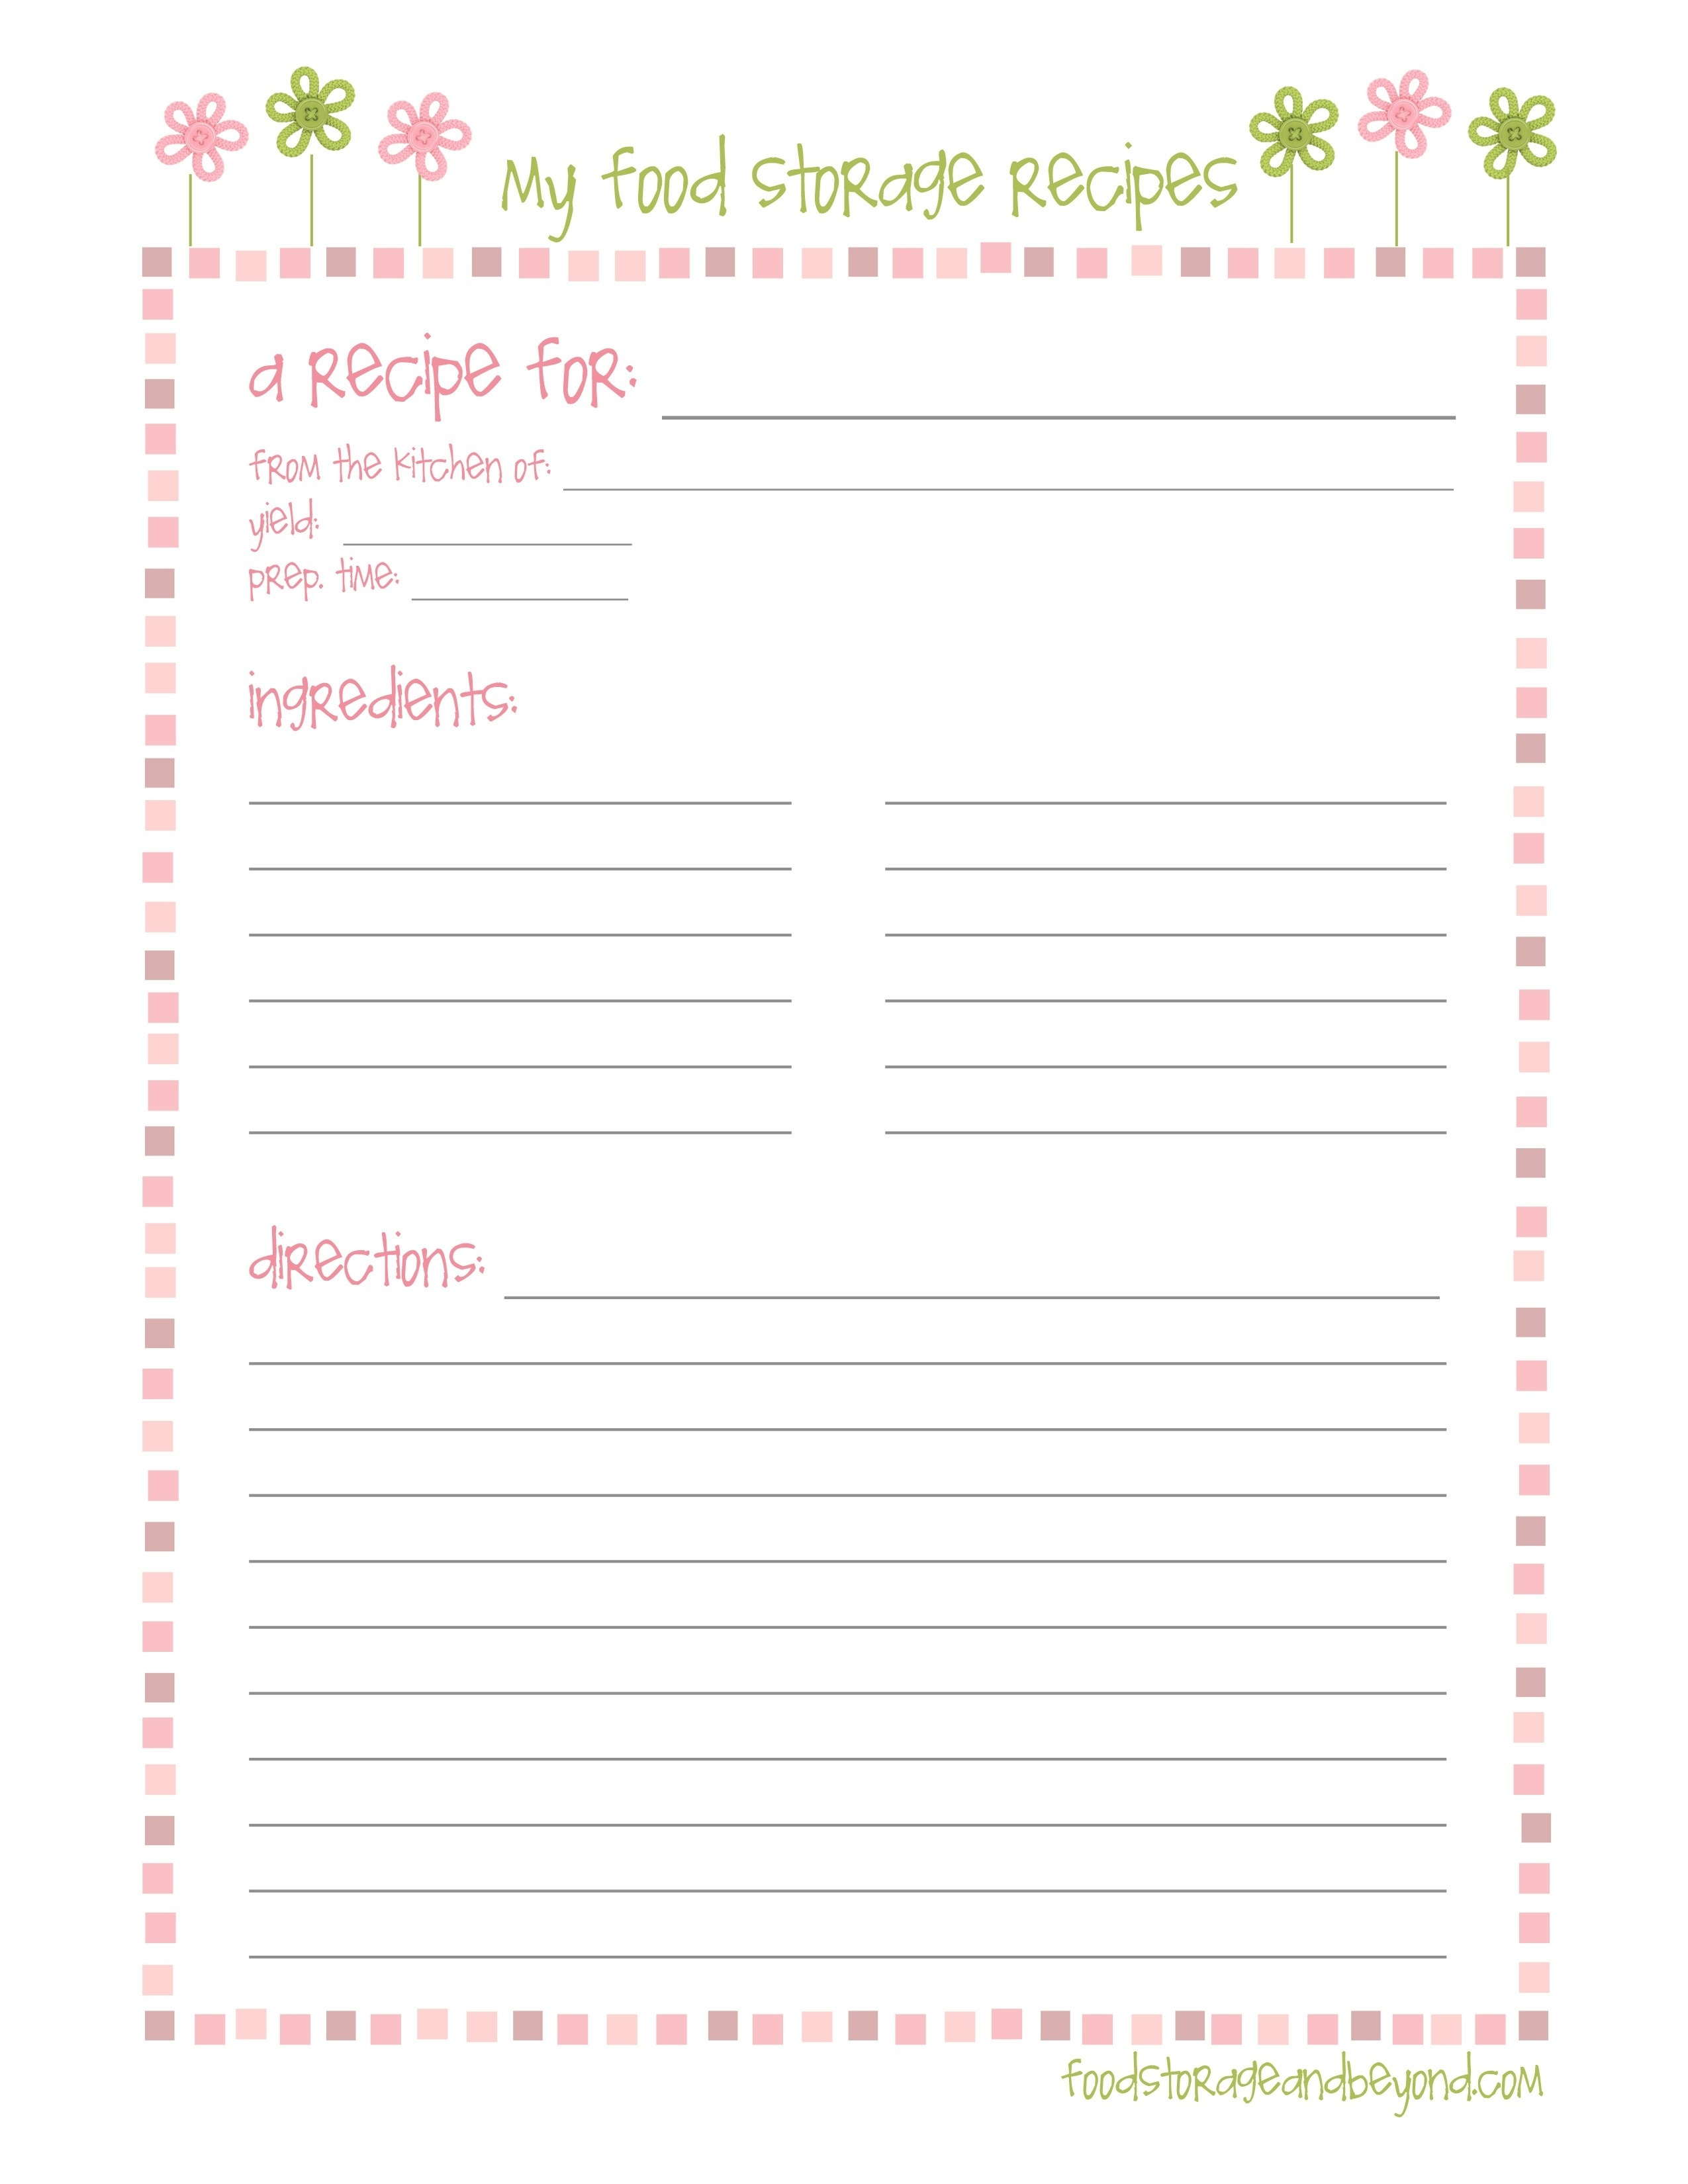 Free Printable Recipe Templates 8X11 | Lazine - Free Printable Recipe Templates